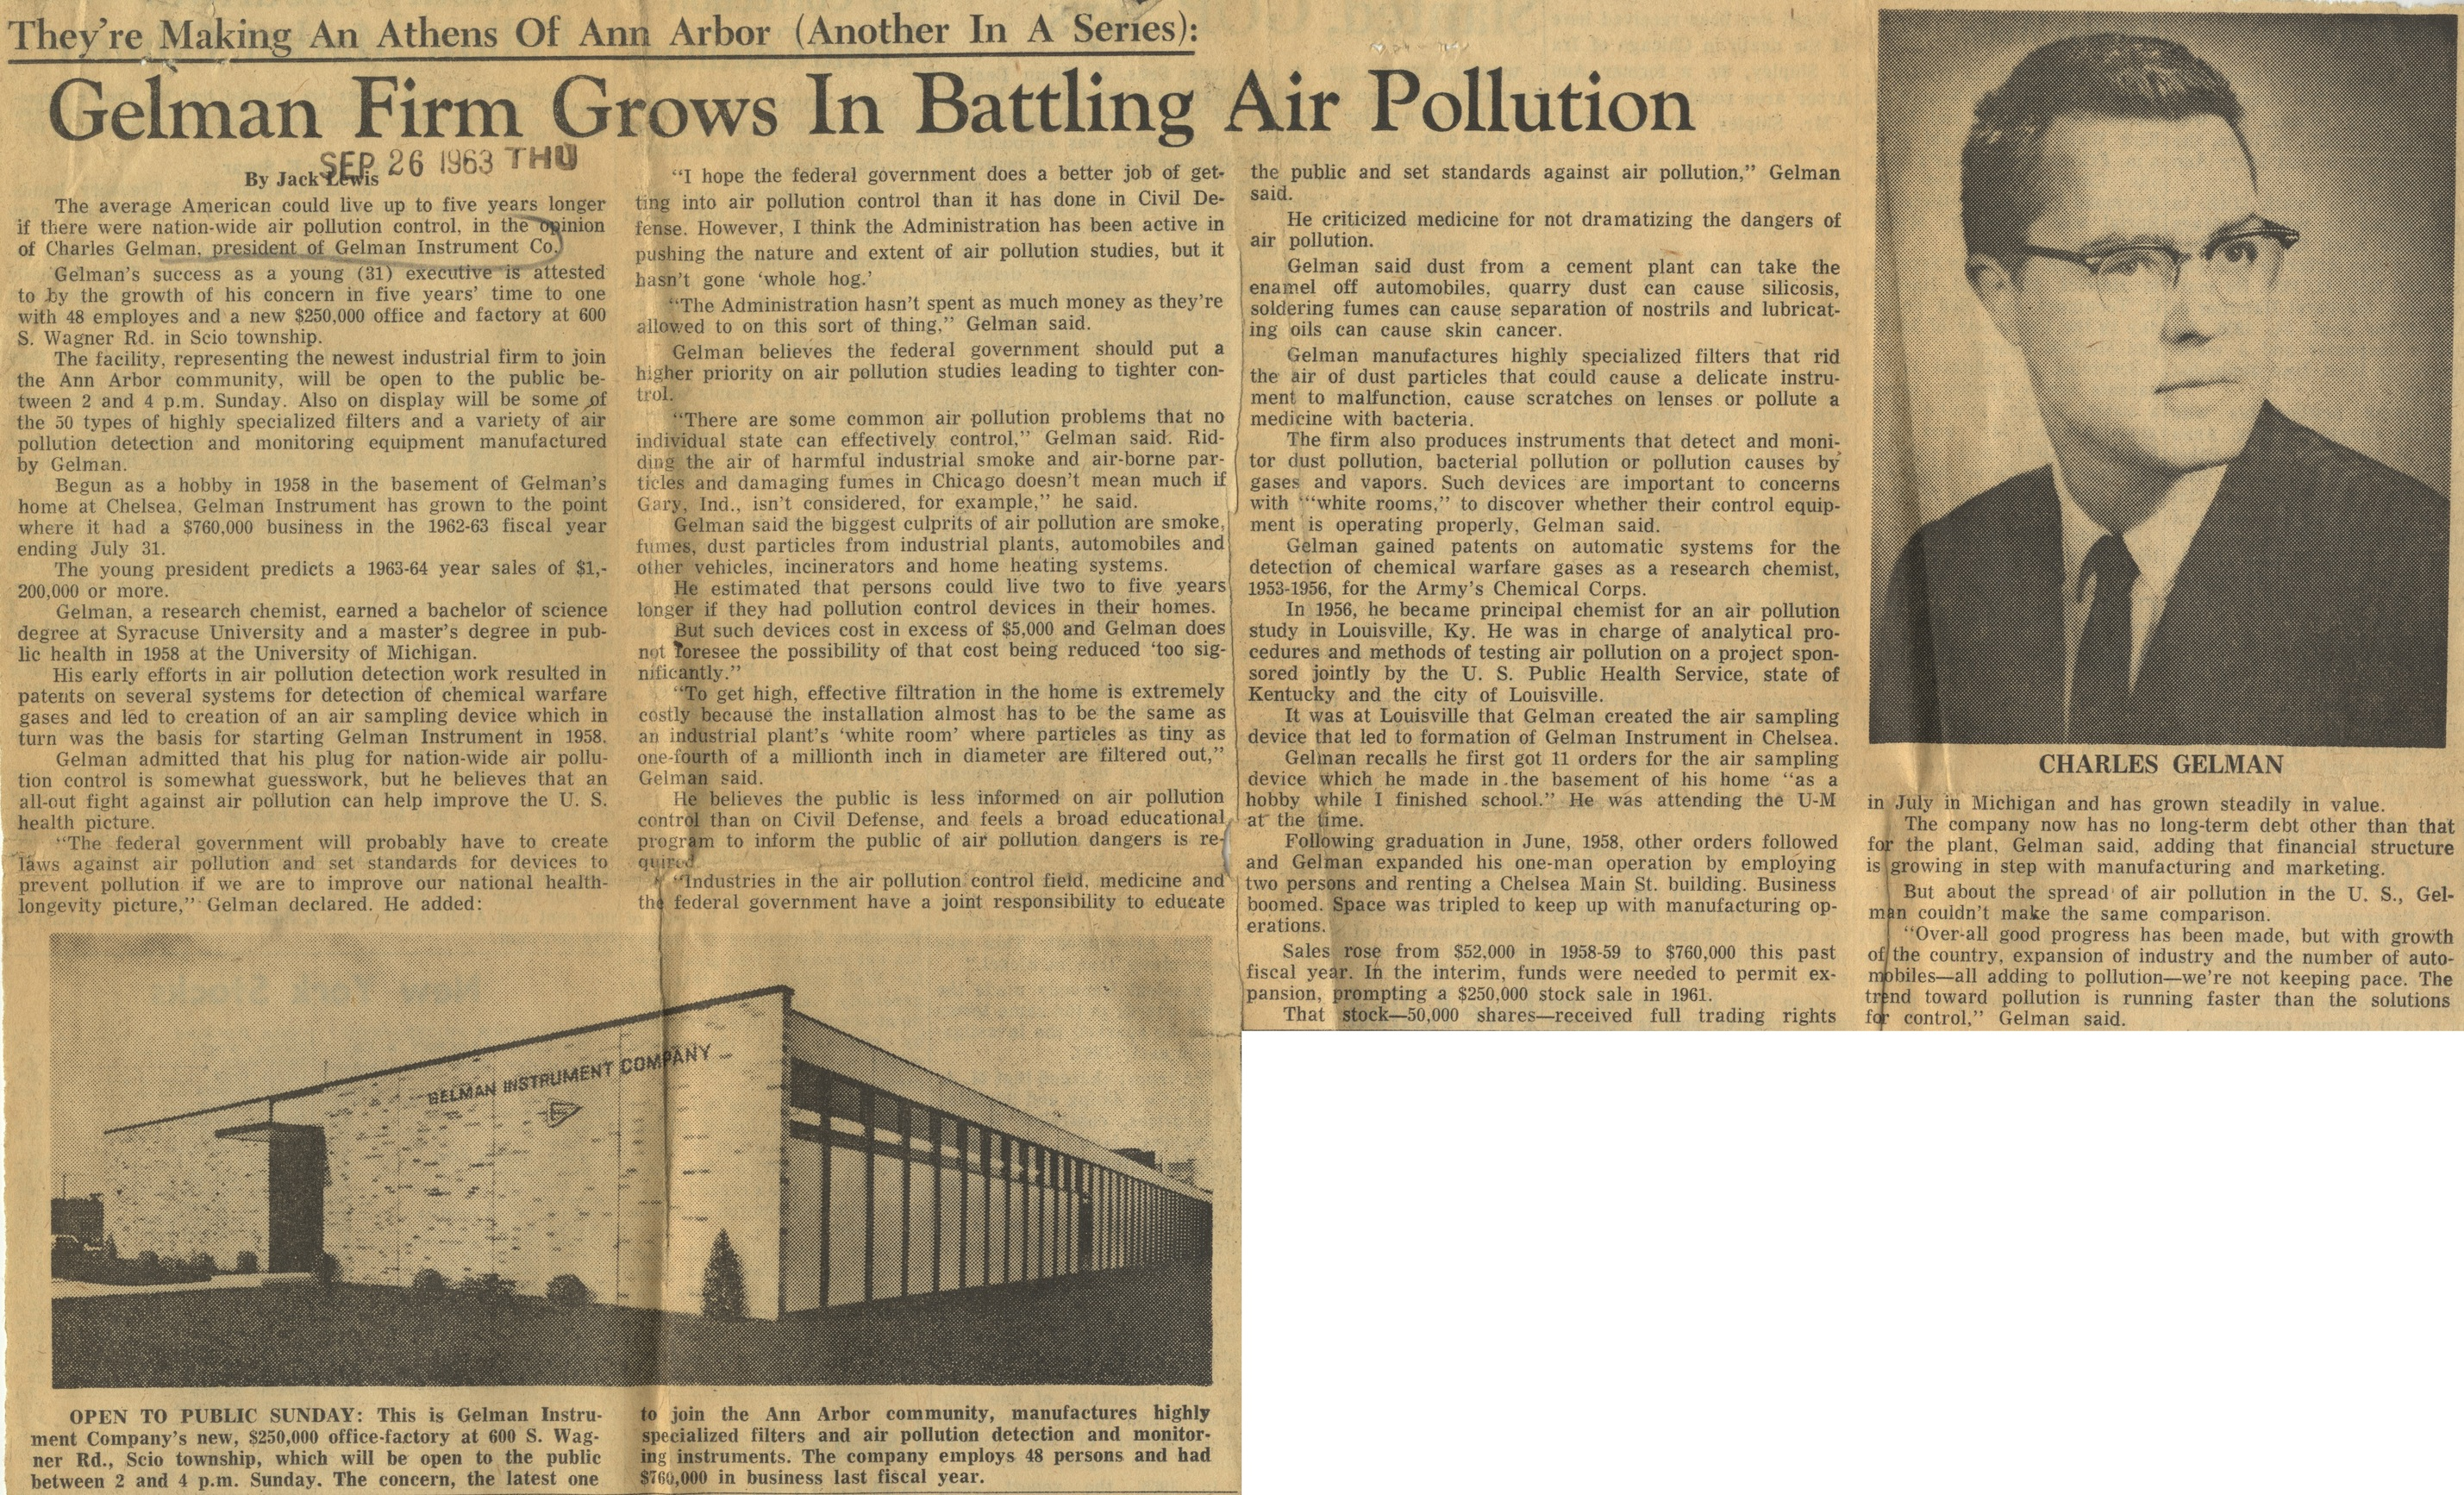 Gelman Firm Grows In Battling Air Pollution image